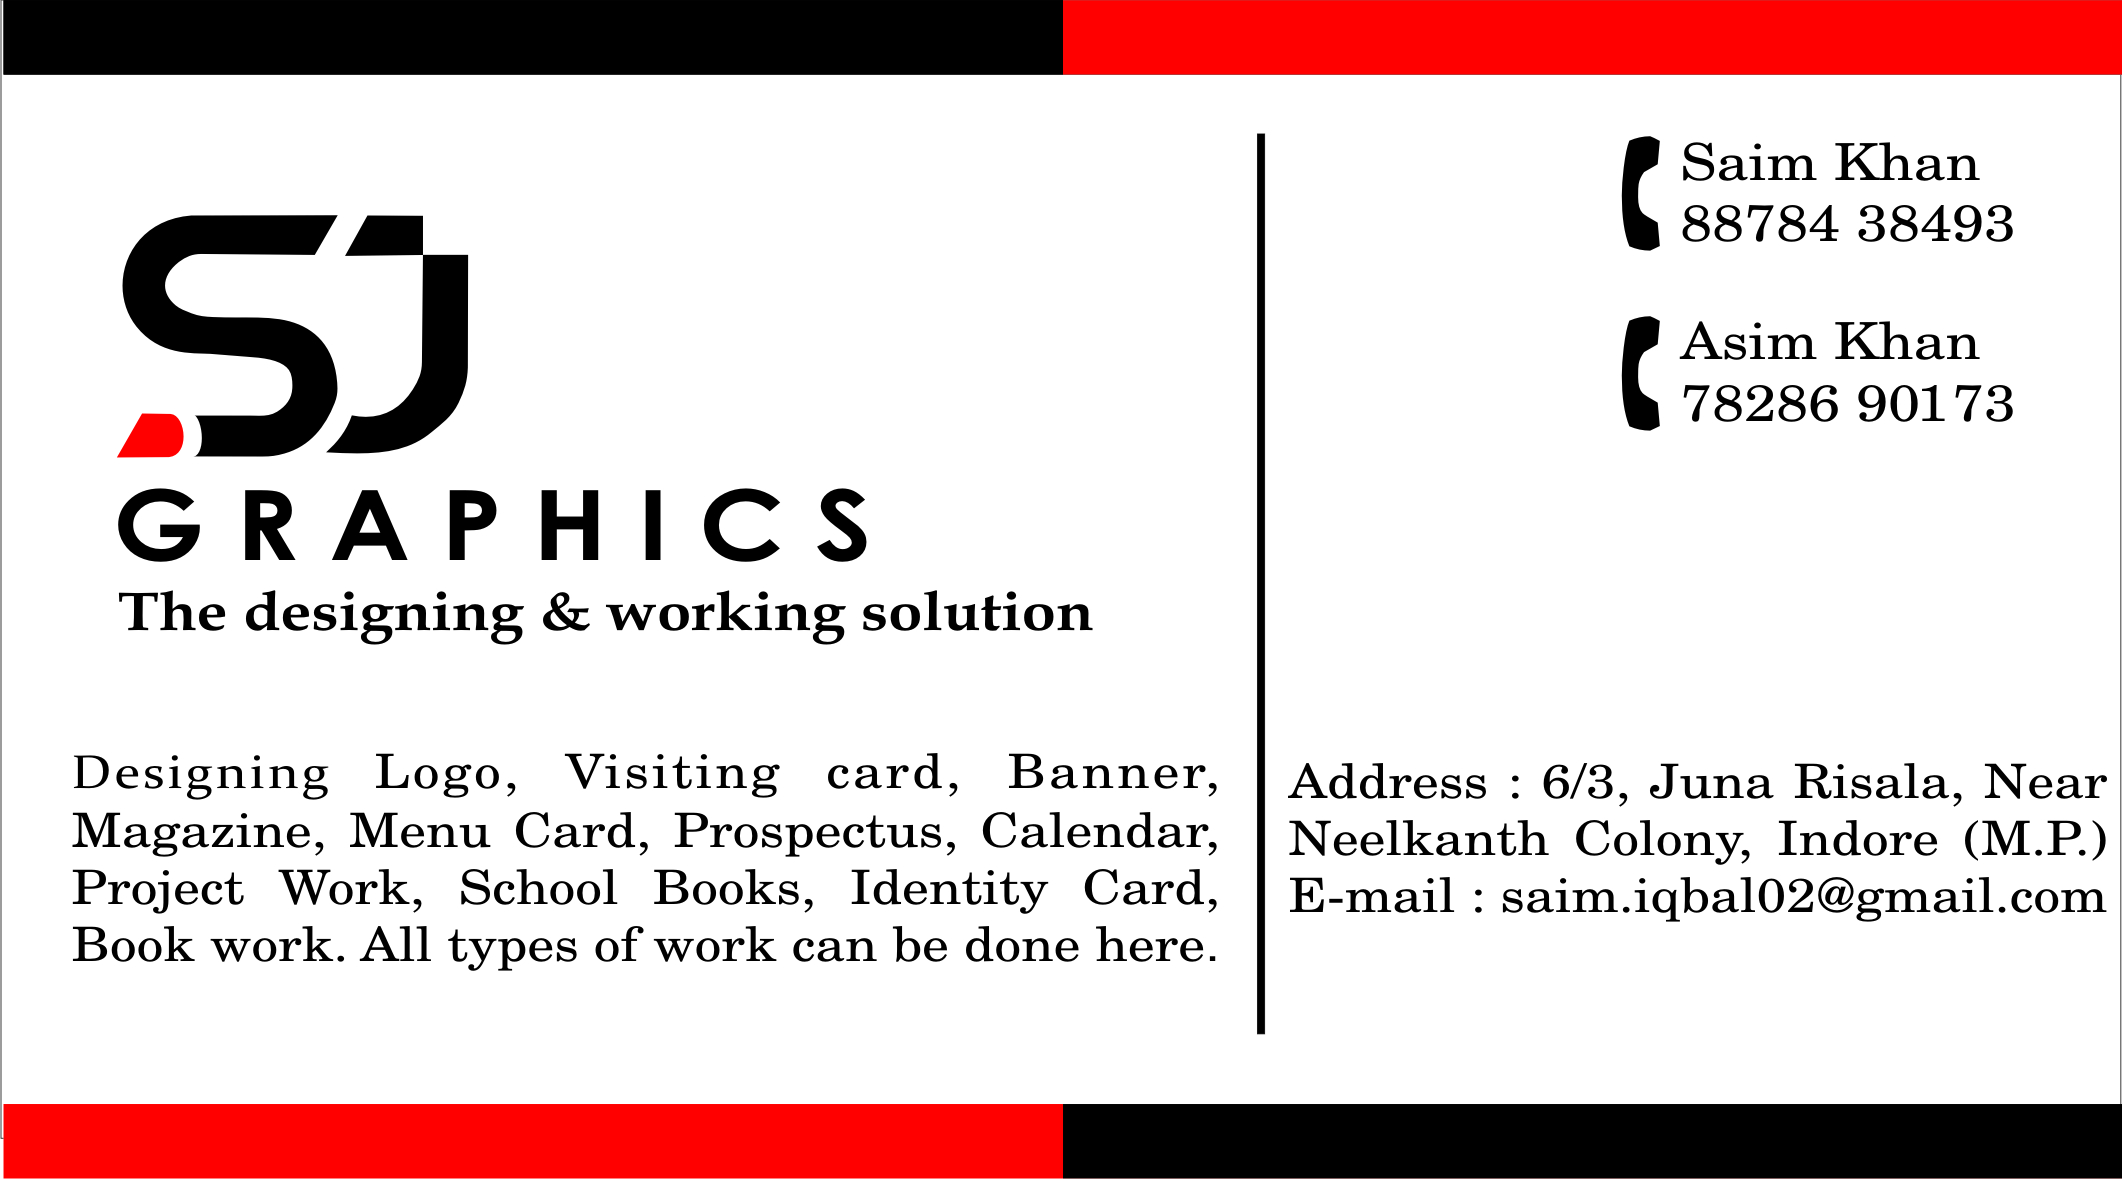 Business card and logo designing